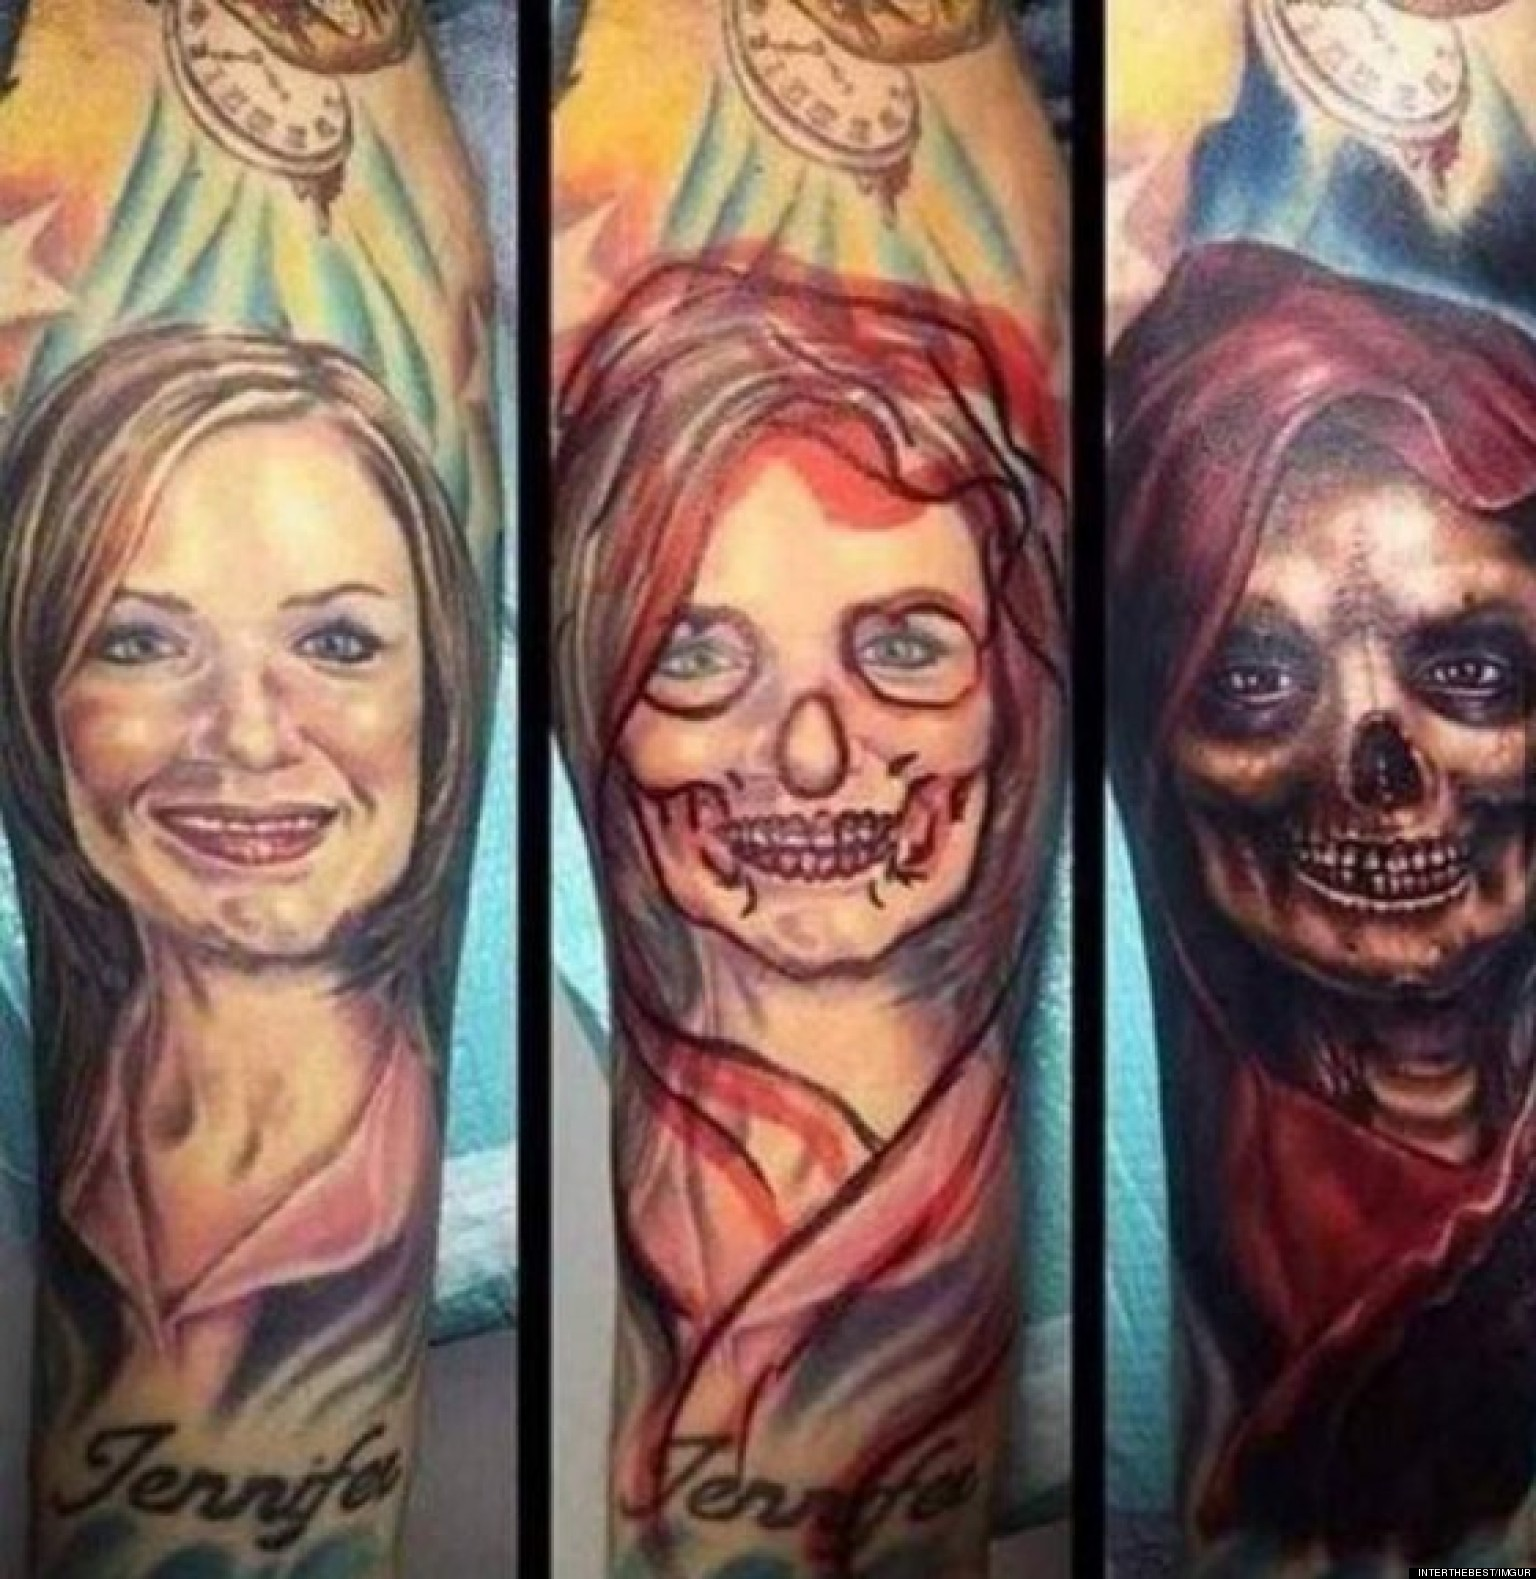 Tattoo Cover Up Replaces Ex-Girlfriend With A Scary Sight (PHOTO)